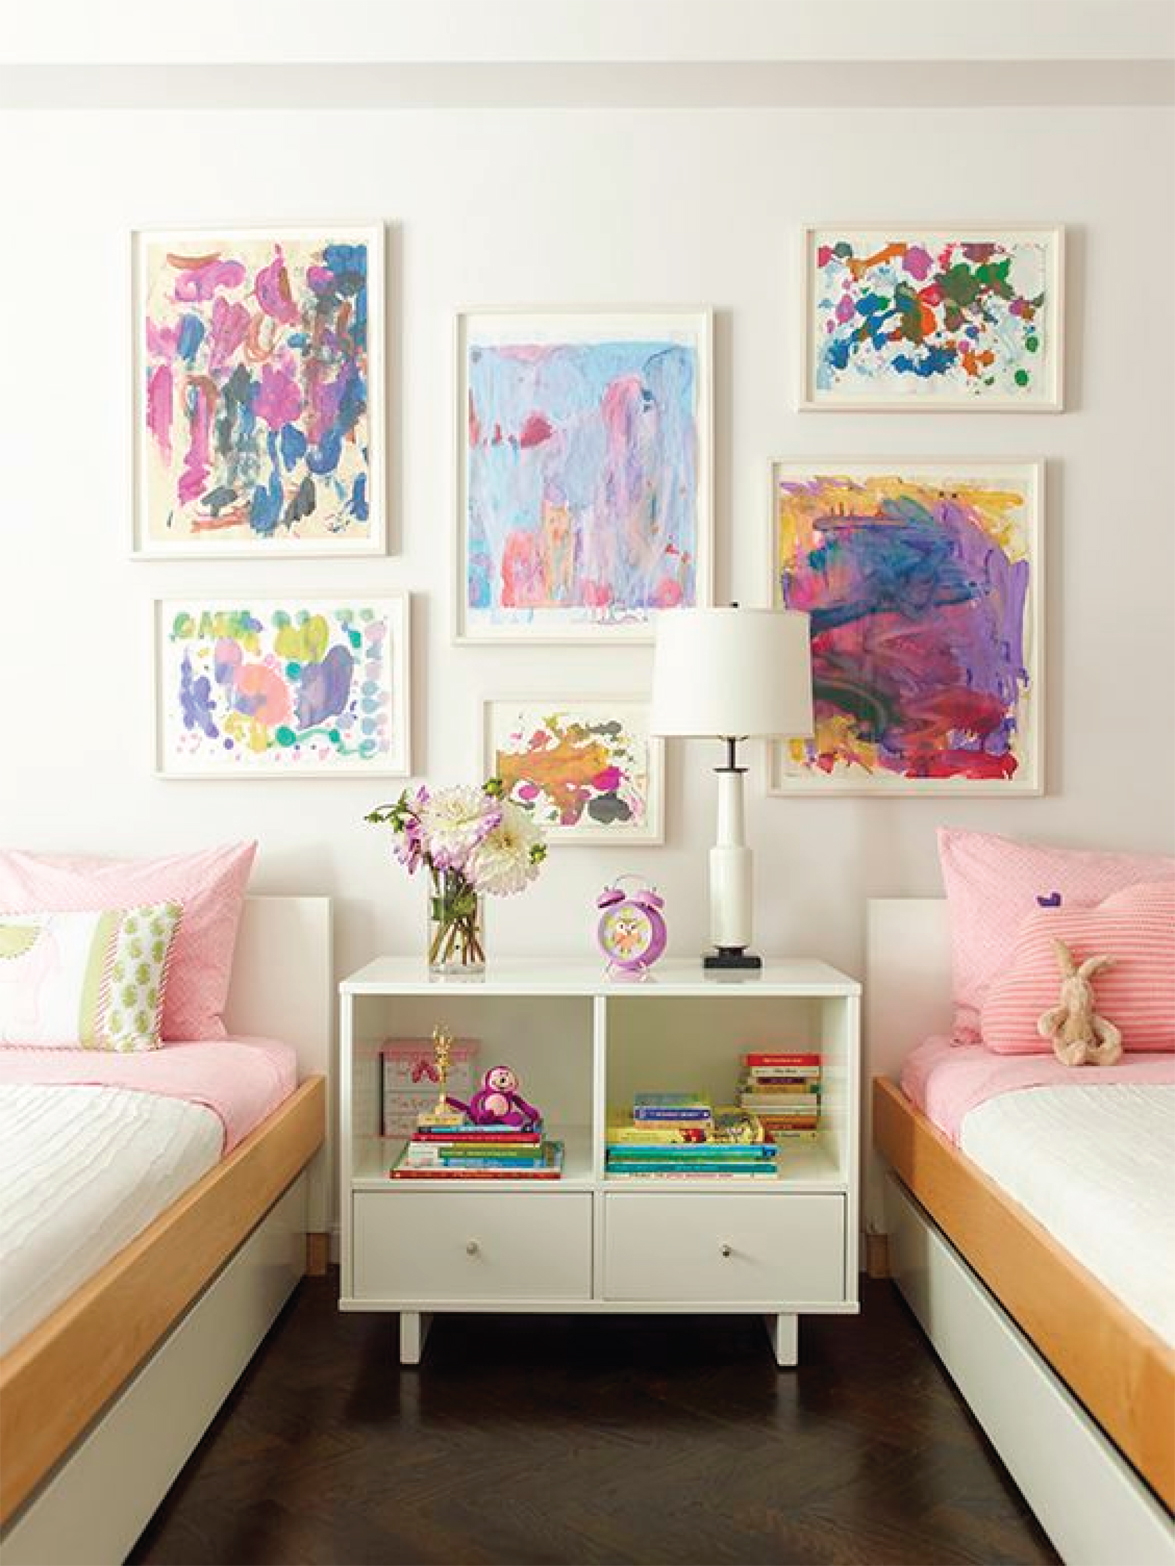 How to Style a Kid's Bedroom | Framing Kids' Art | Akin Design Studio Blog